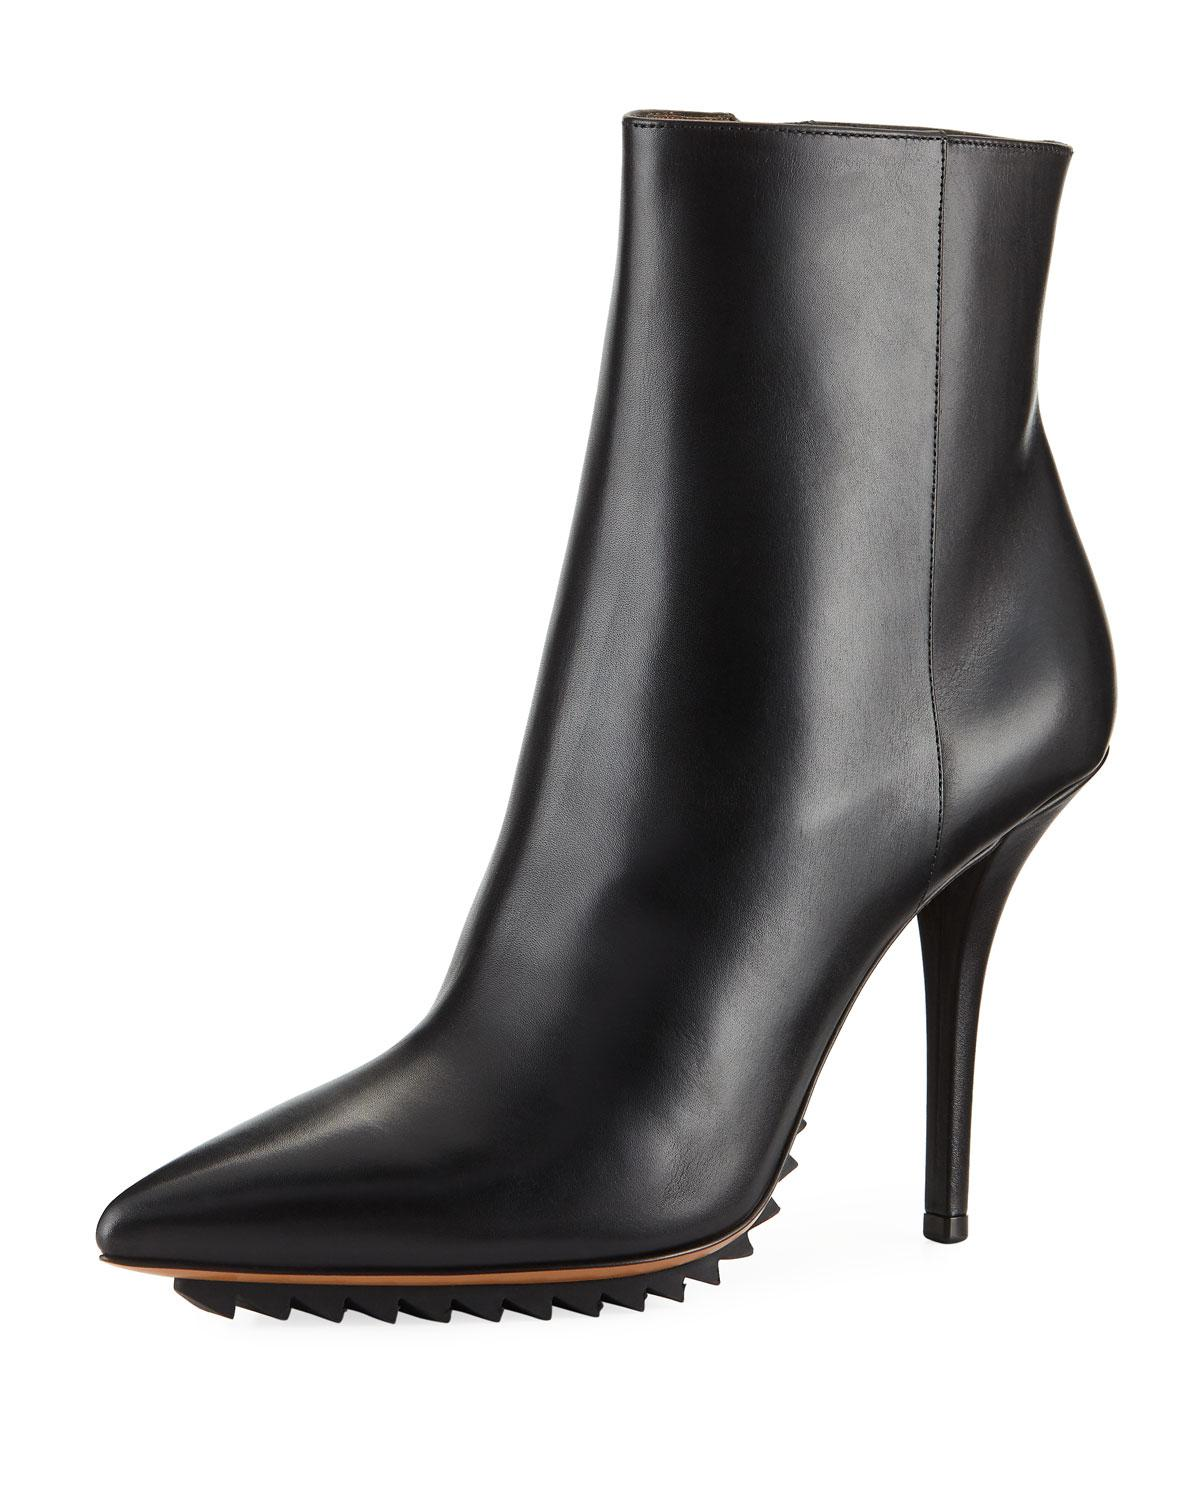 99b20cdabec8 Lyst - Givenchy Strettoia Leather Pointed-toe Ankle Boots in Black